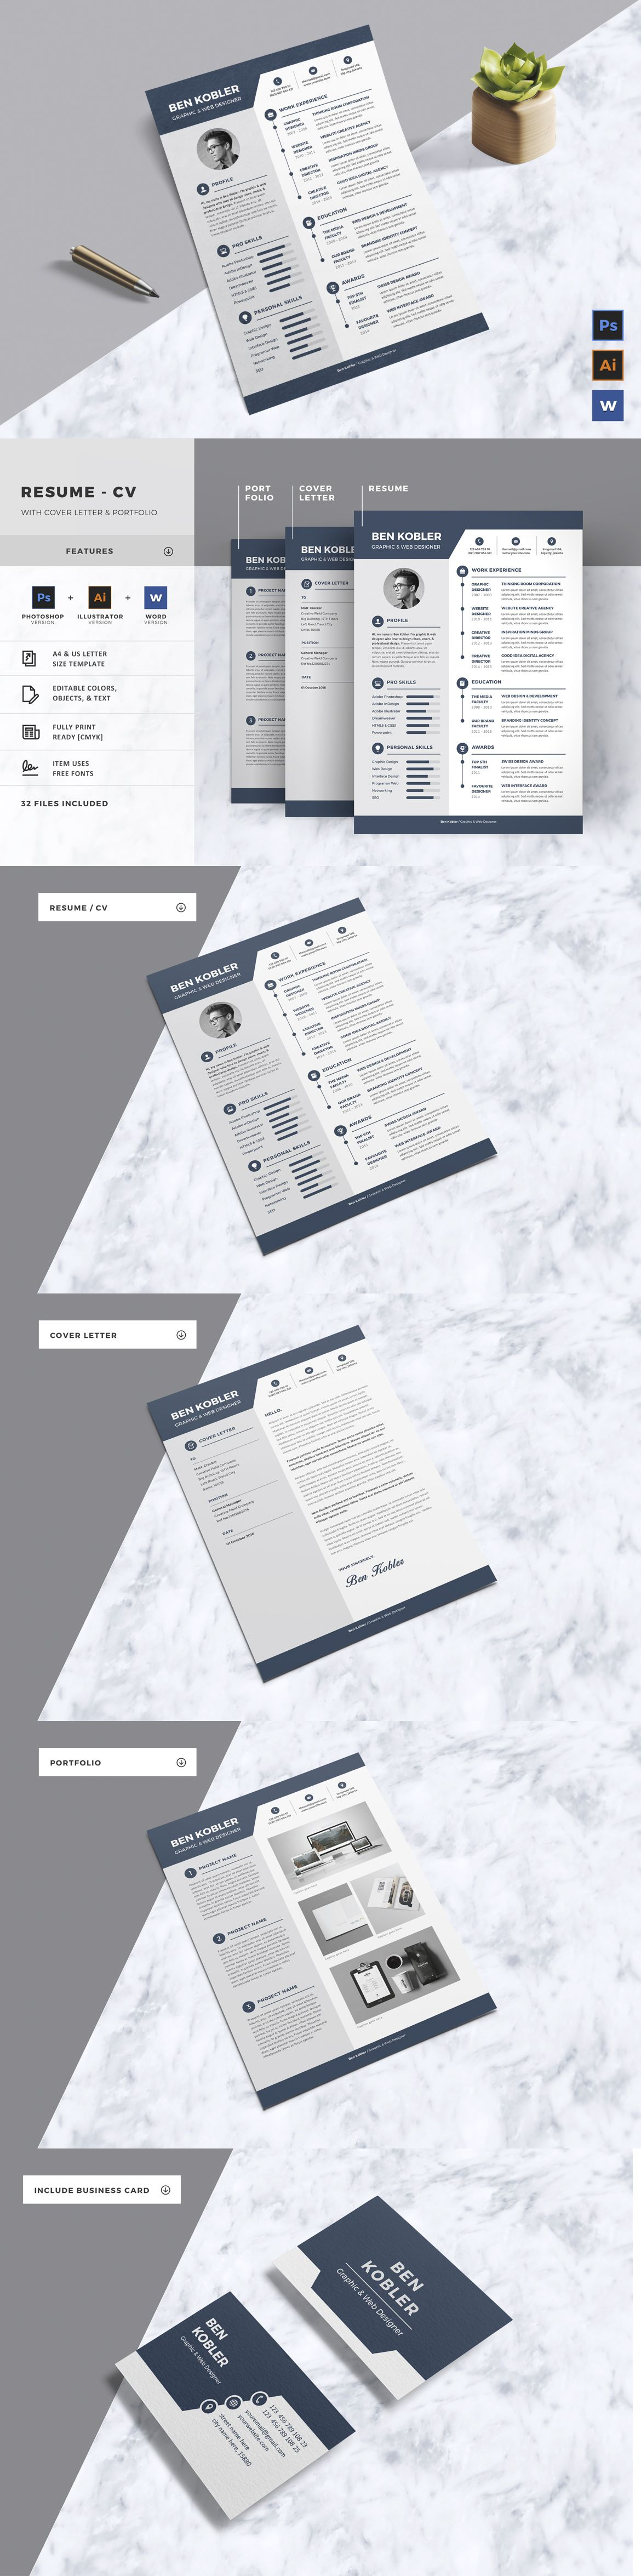 Complete Resume Template AI, EPS, PSD, MS Word | Resume / CV Design ...